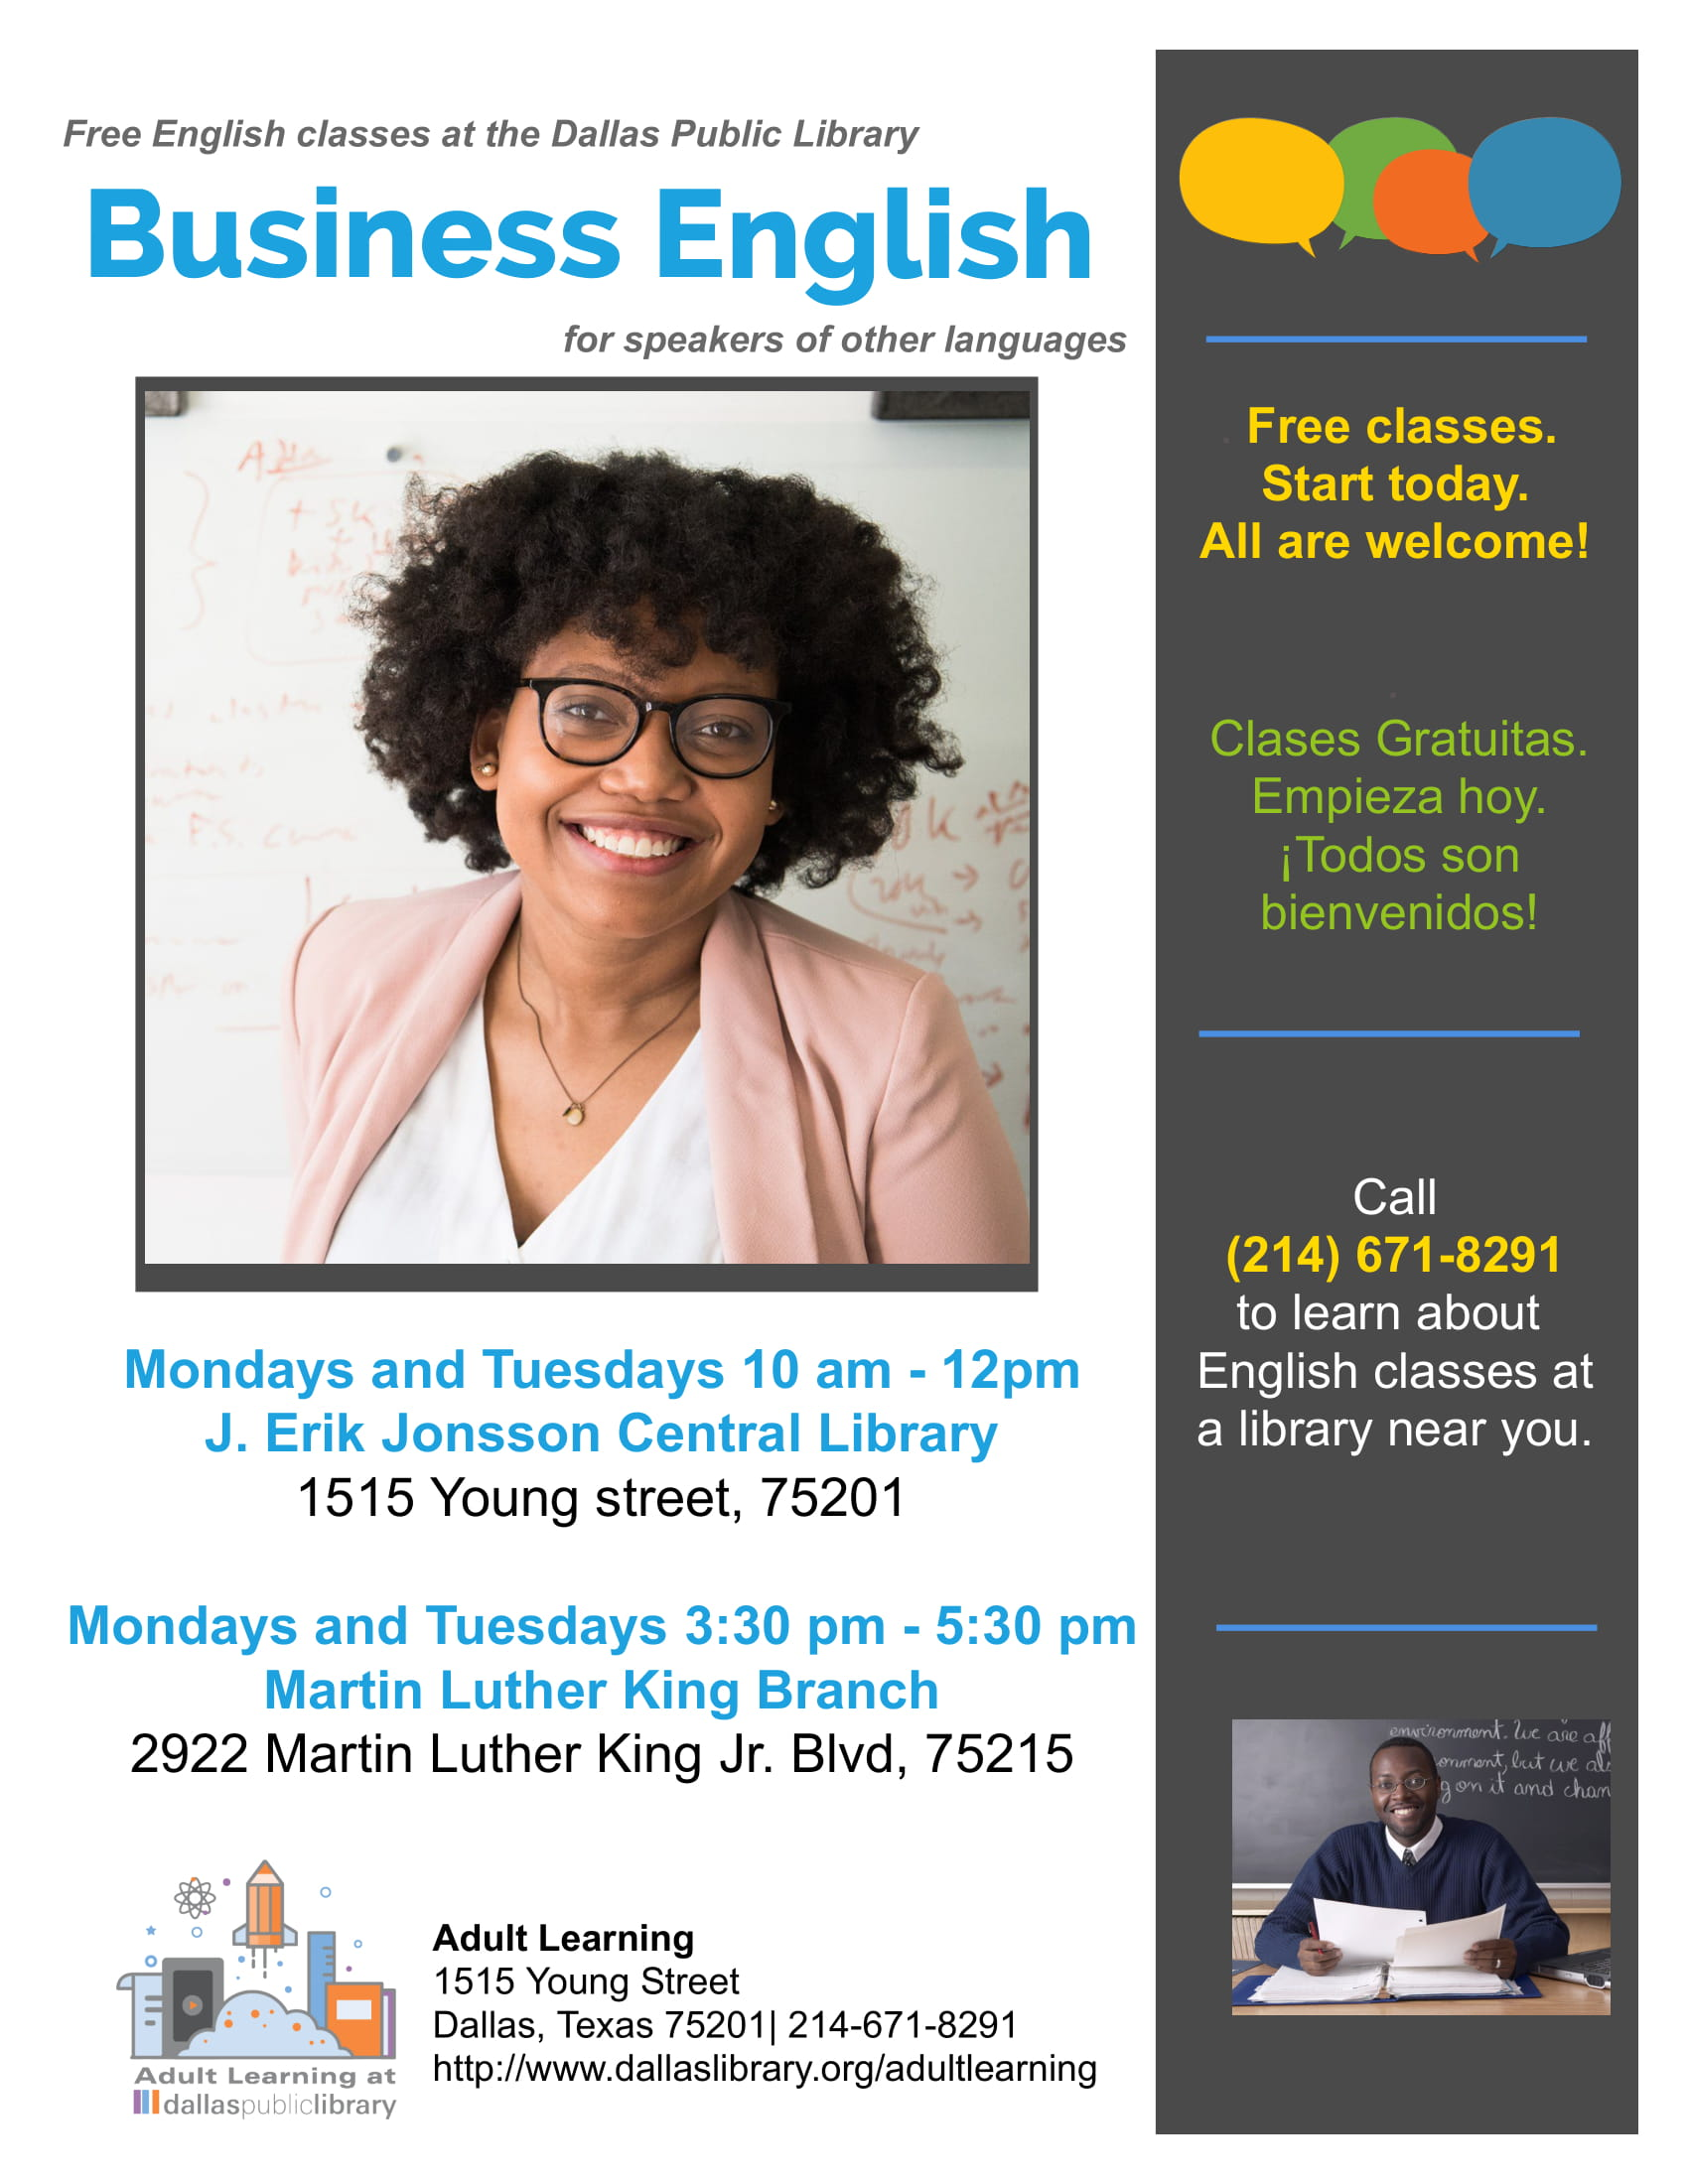 Free English Classes at MLK Library